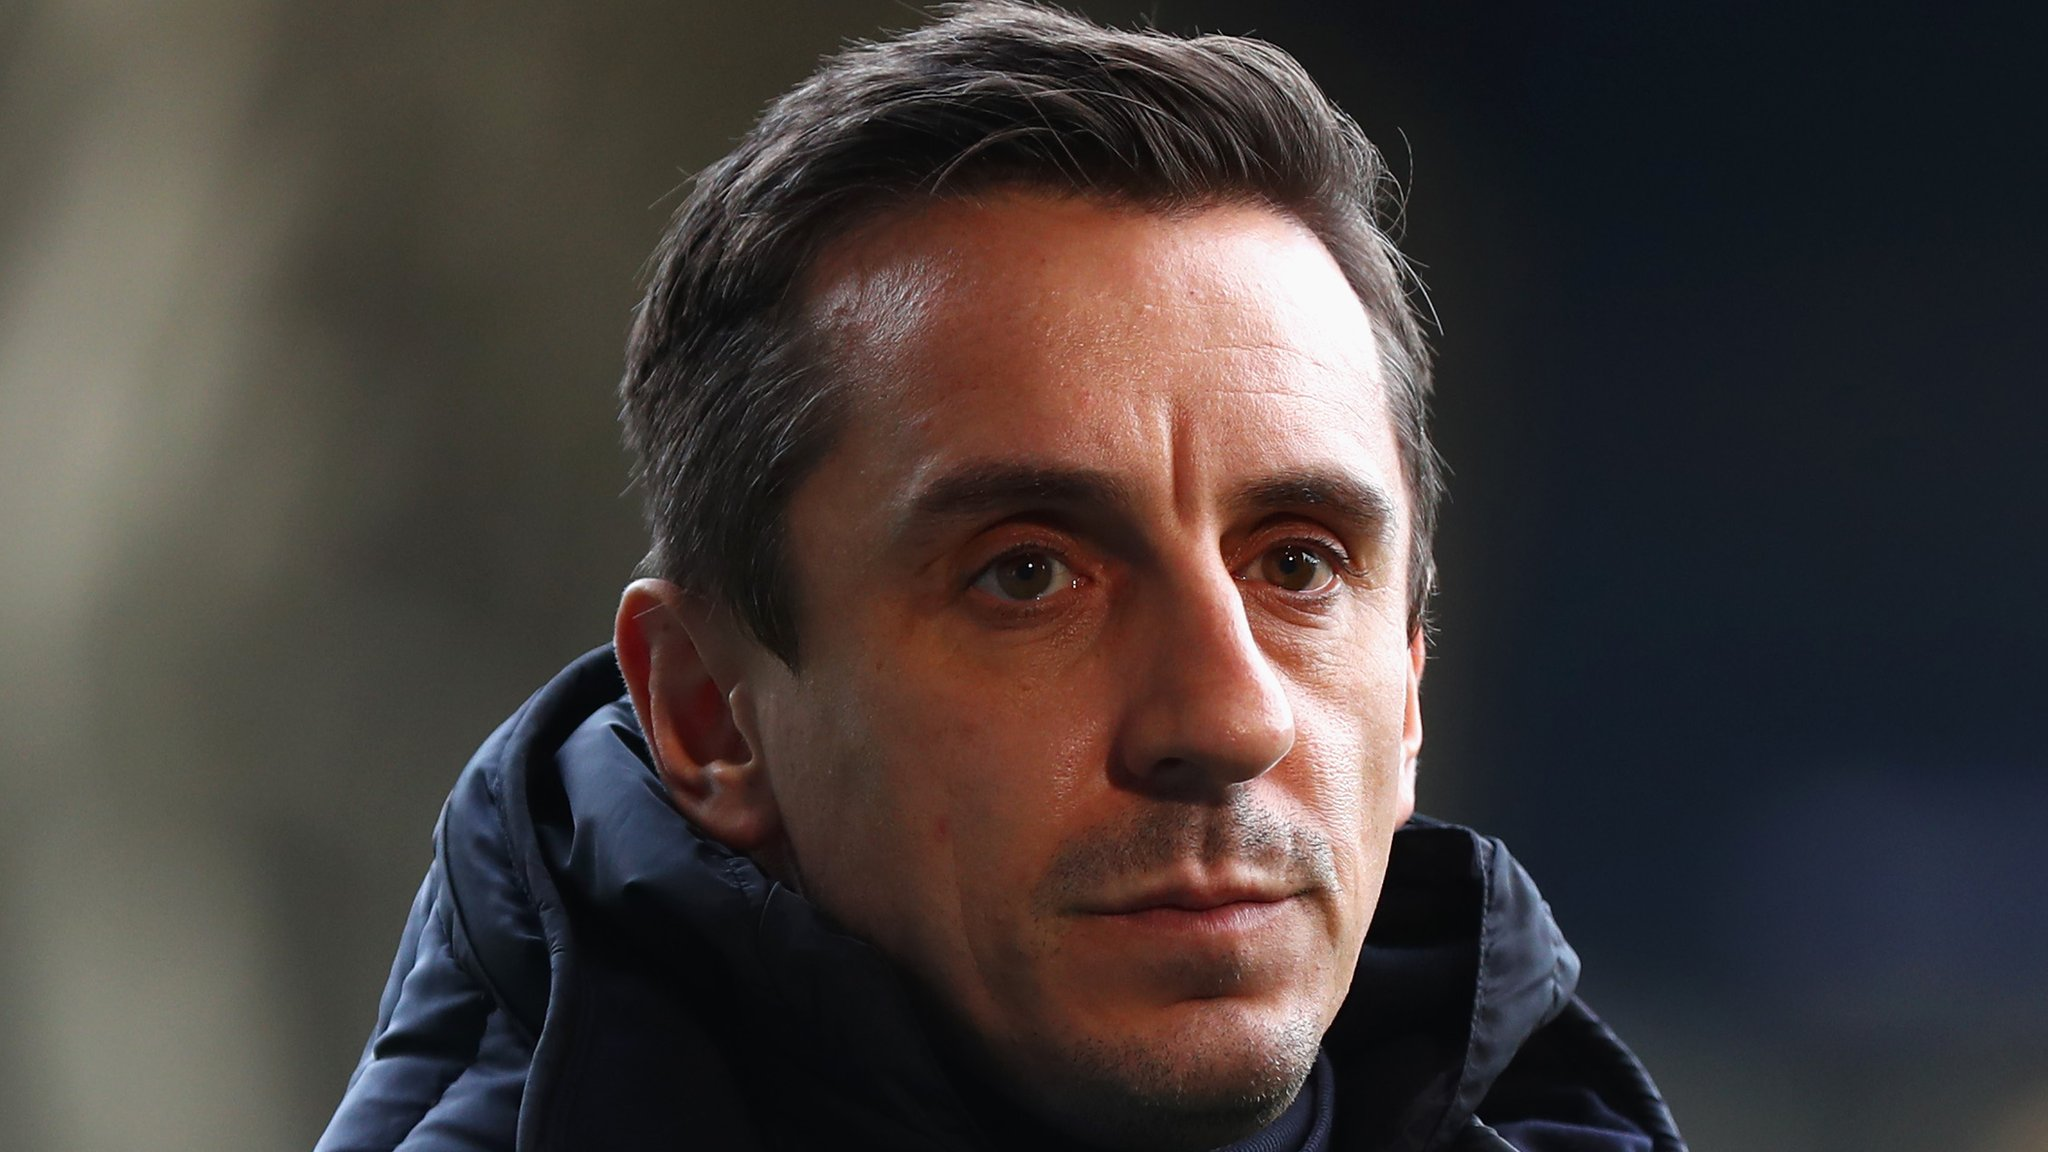 Motherwell boss lacks etiquette with Salford money talk - Neville